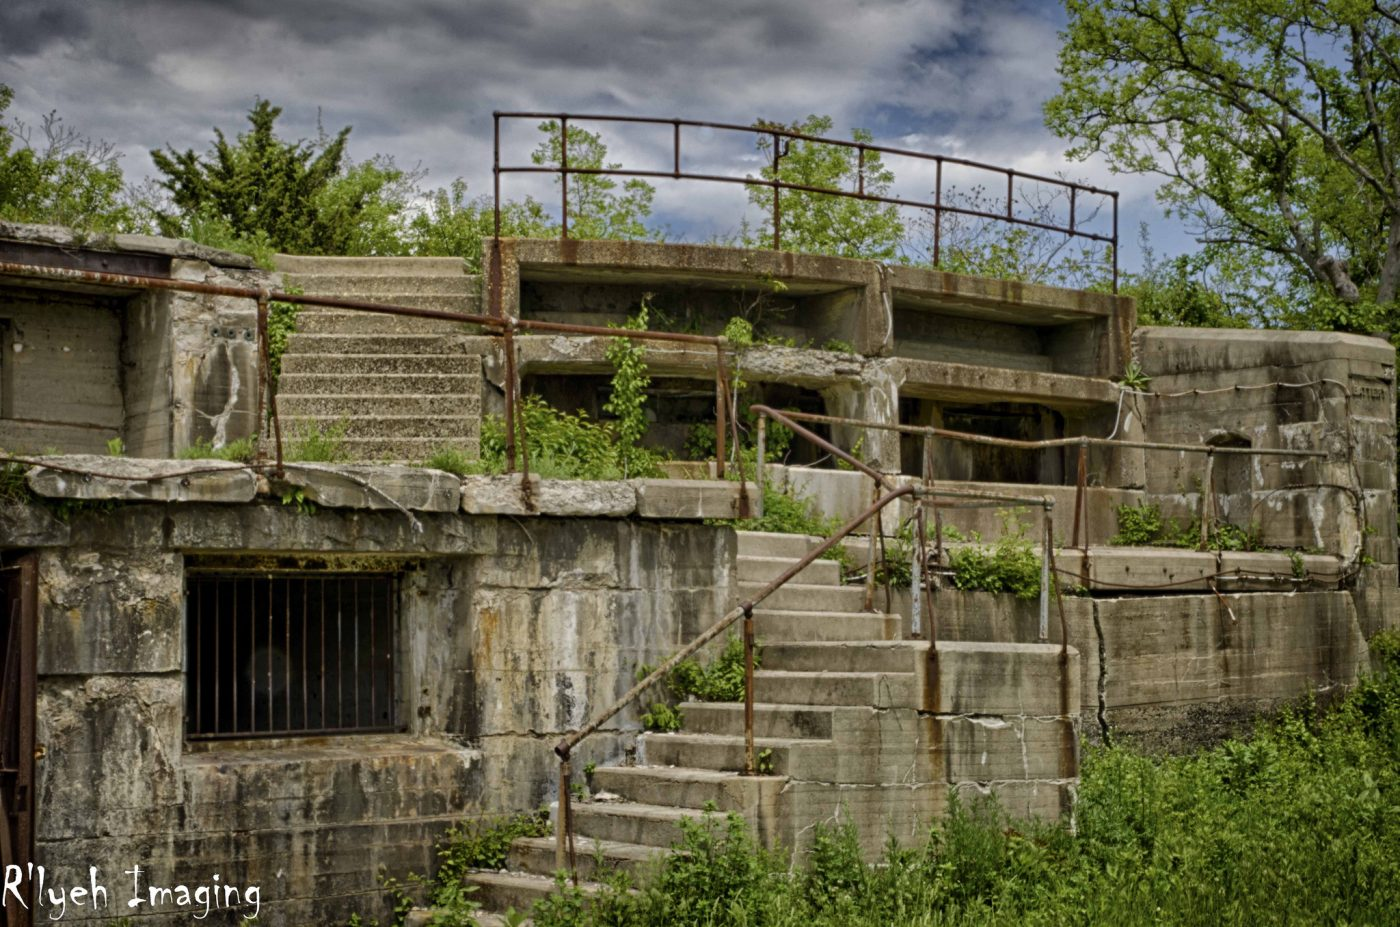 The Remnants Of The Abandoned Fort Hancock In New Jersey